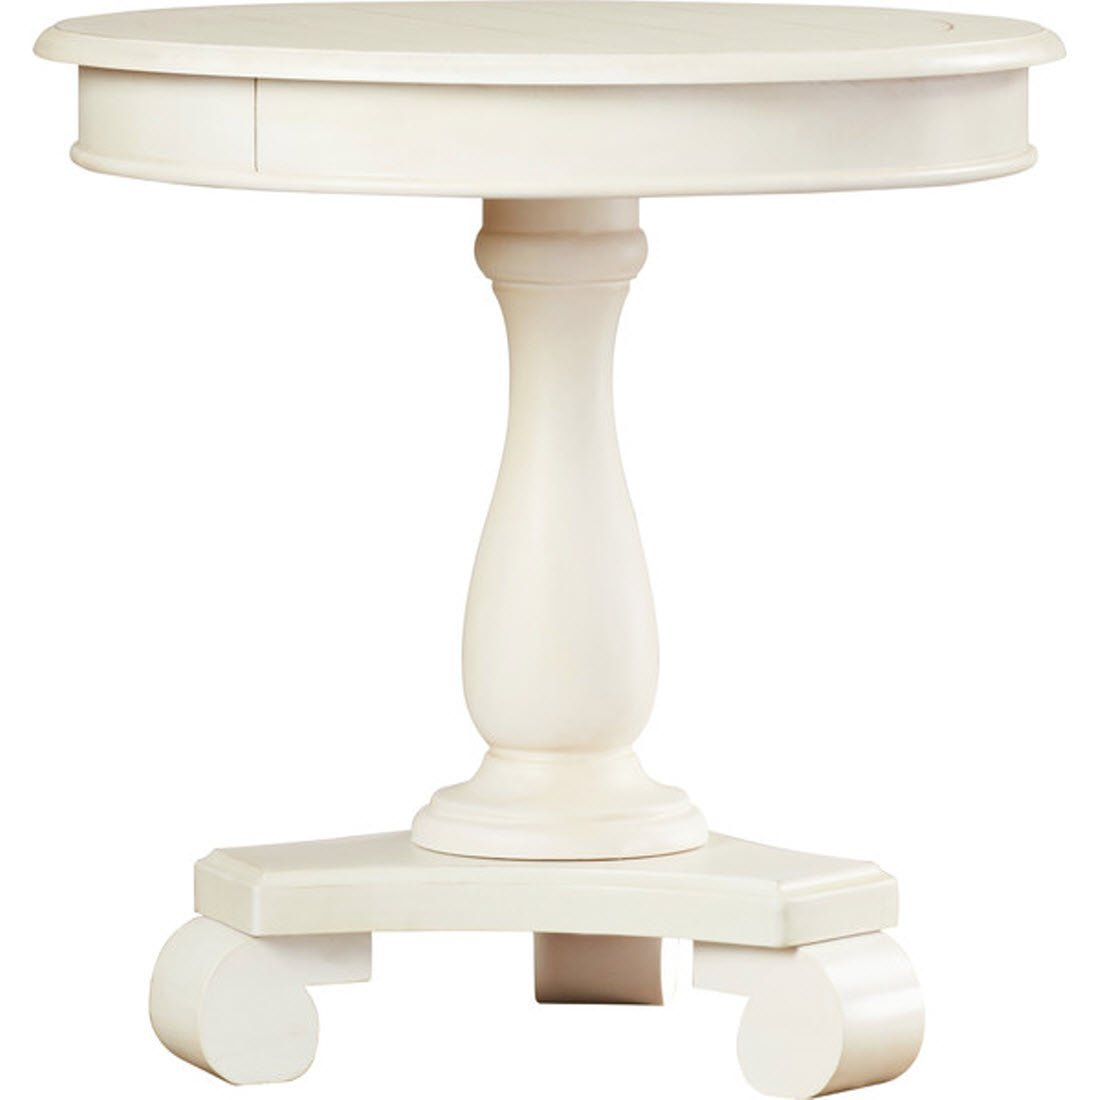 Bezons End Table - French Country Style - Made with Select Veneer and Hardwood Solids - Round Shape Table - Distressed Finish - 1 Year Warranty! (White)